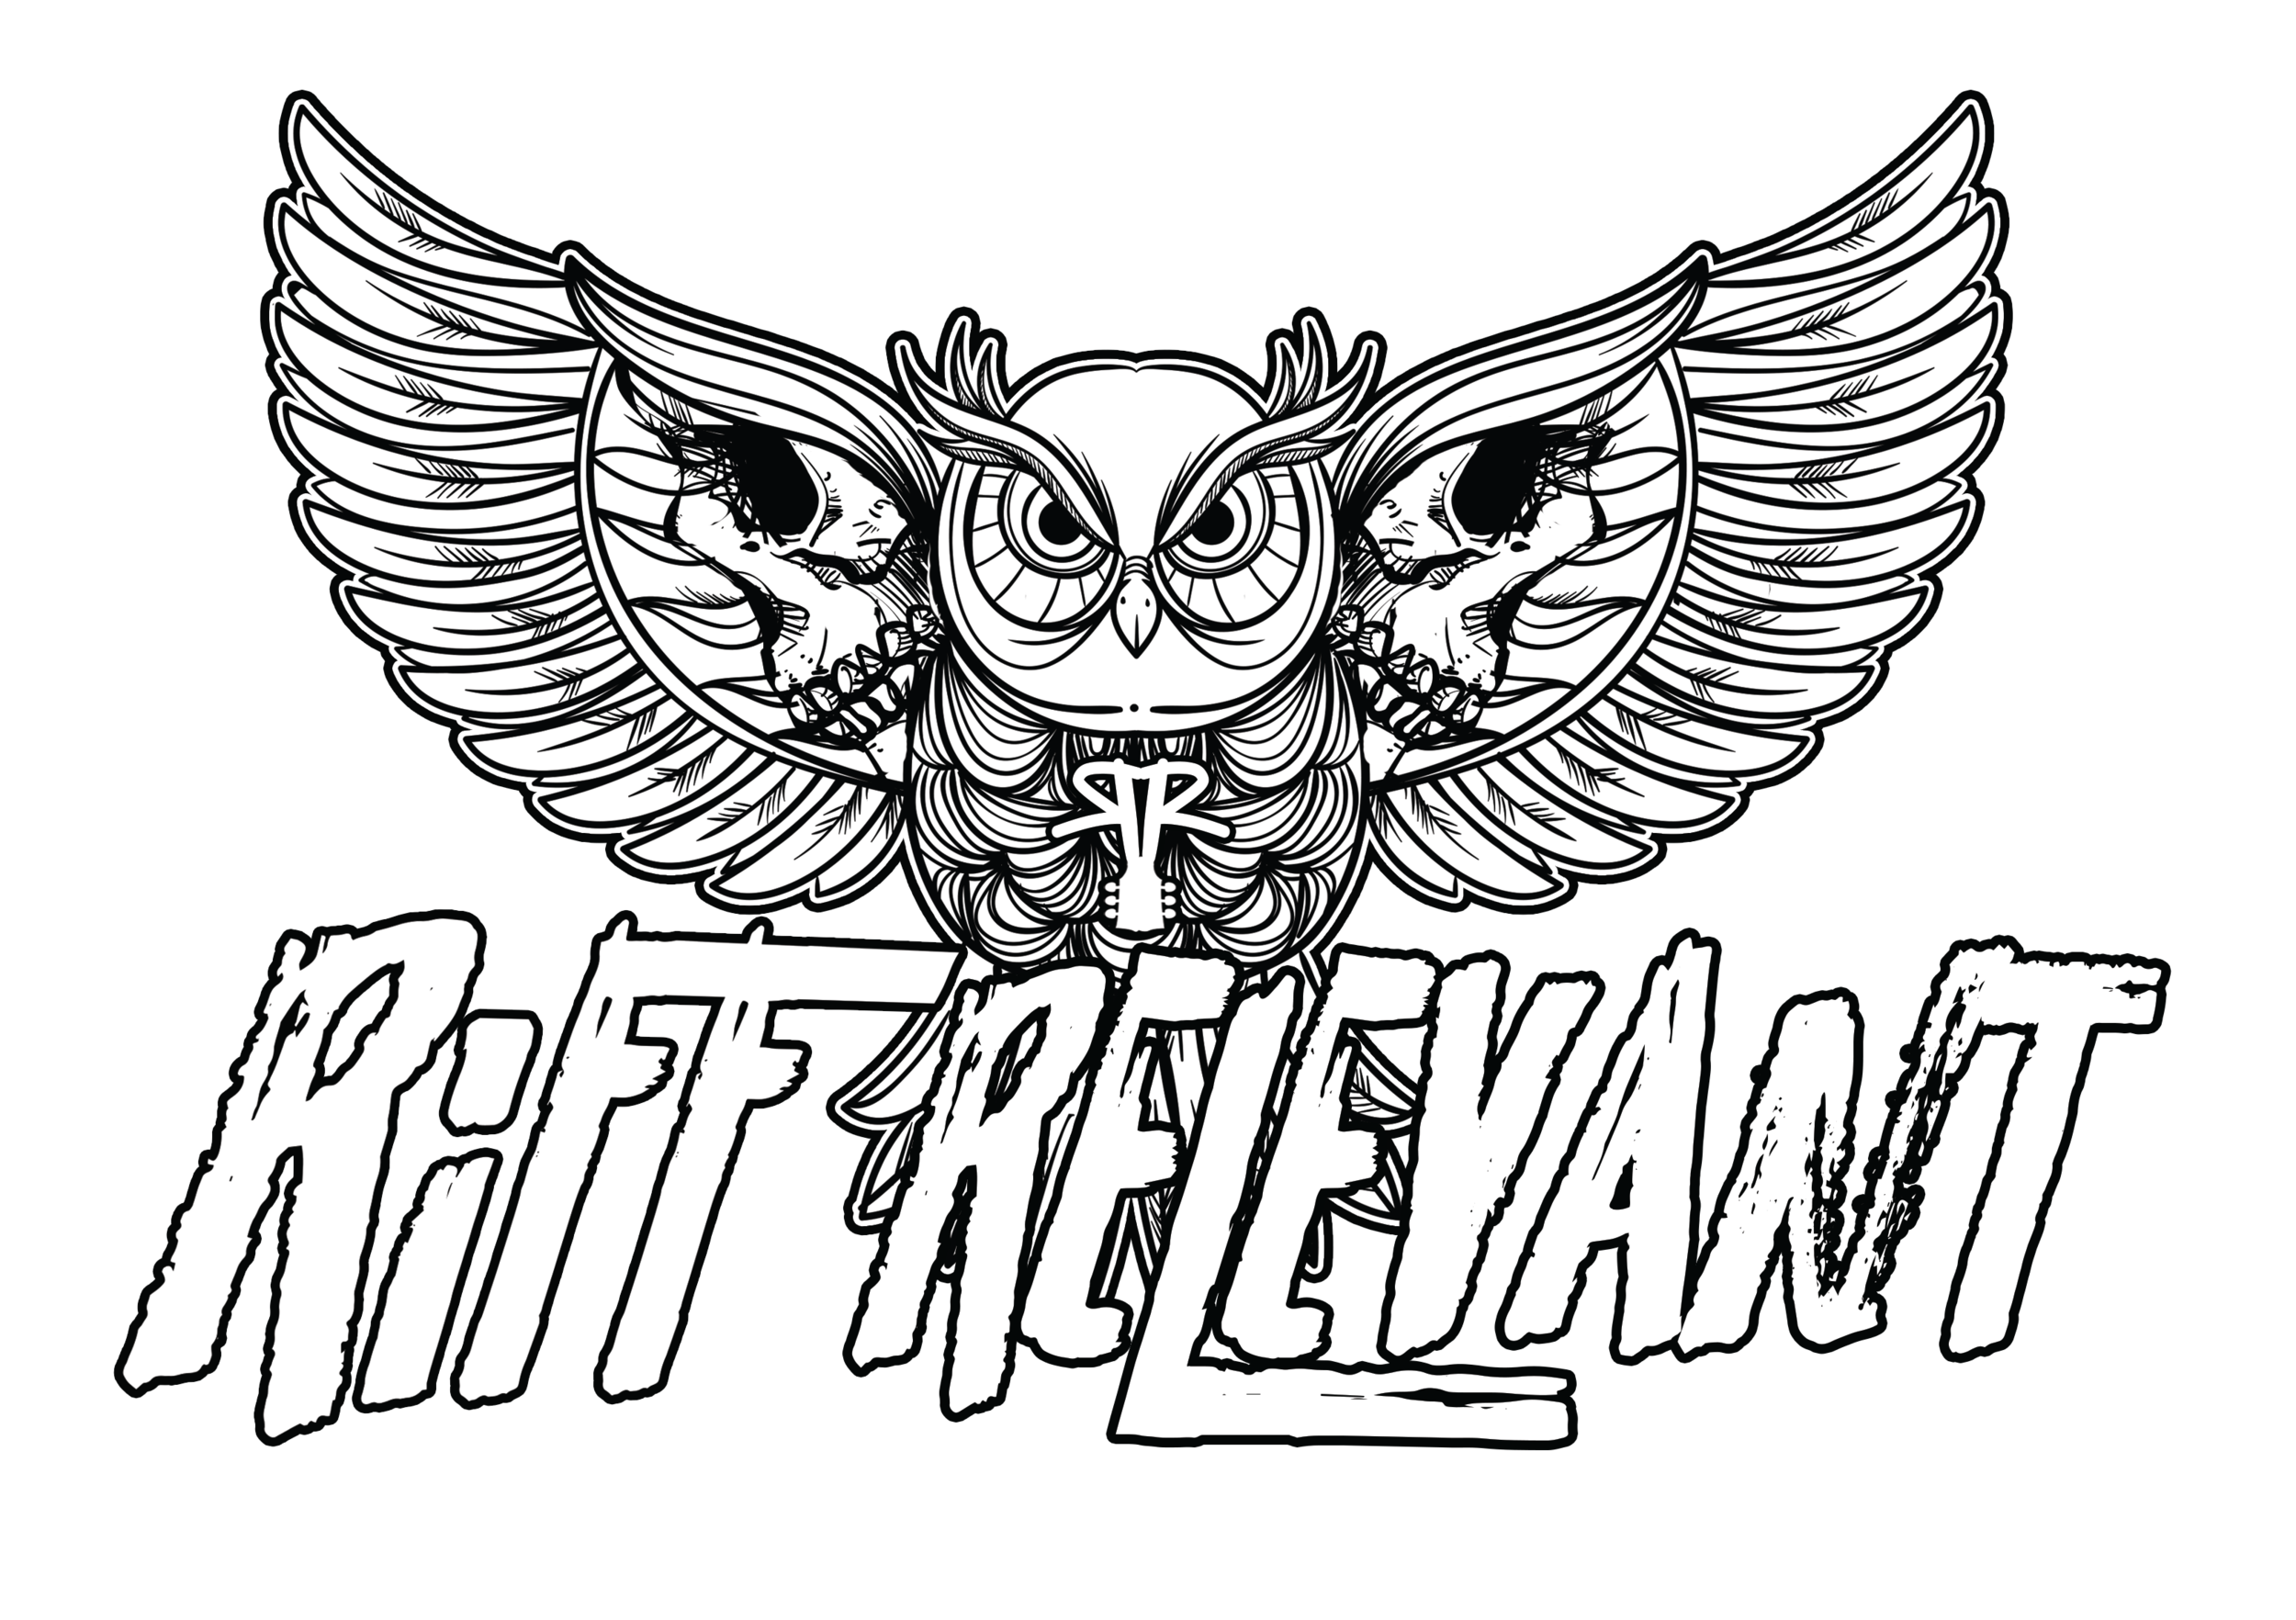 RiffRelevant.com - Hard & Heavy Music News Features. Begun in 2016, a melding of contributors who have lived and breathed heavy music their entire lives. Riff Relevant covers every subgenre of heavy rock and metal with articles including music news, release reviews, musician & industry interviews, live performance photography, guest features, exclusive audio & video premieres, etc. All free to readers of the website & social media outlets.